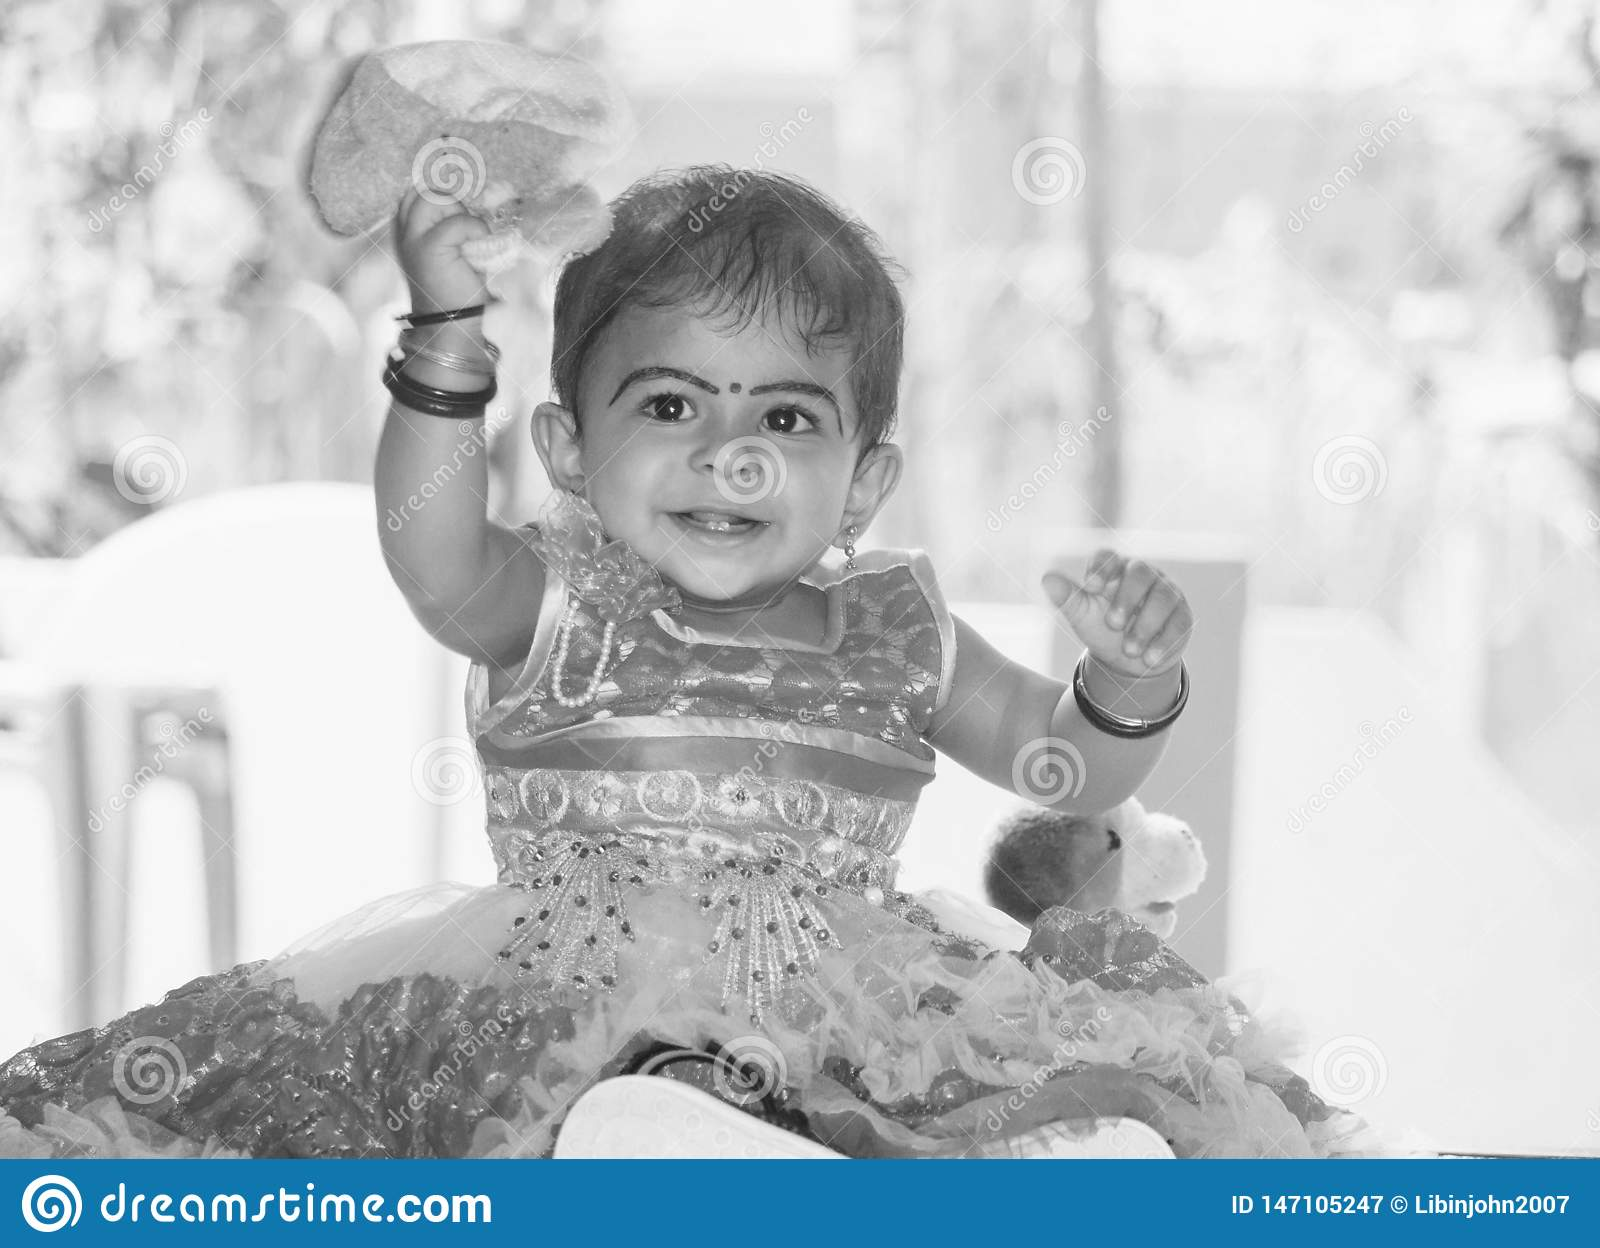 A black and white portrait of a smiling cute Indian child girl